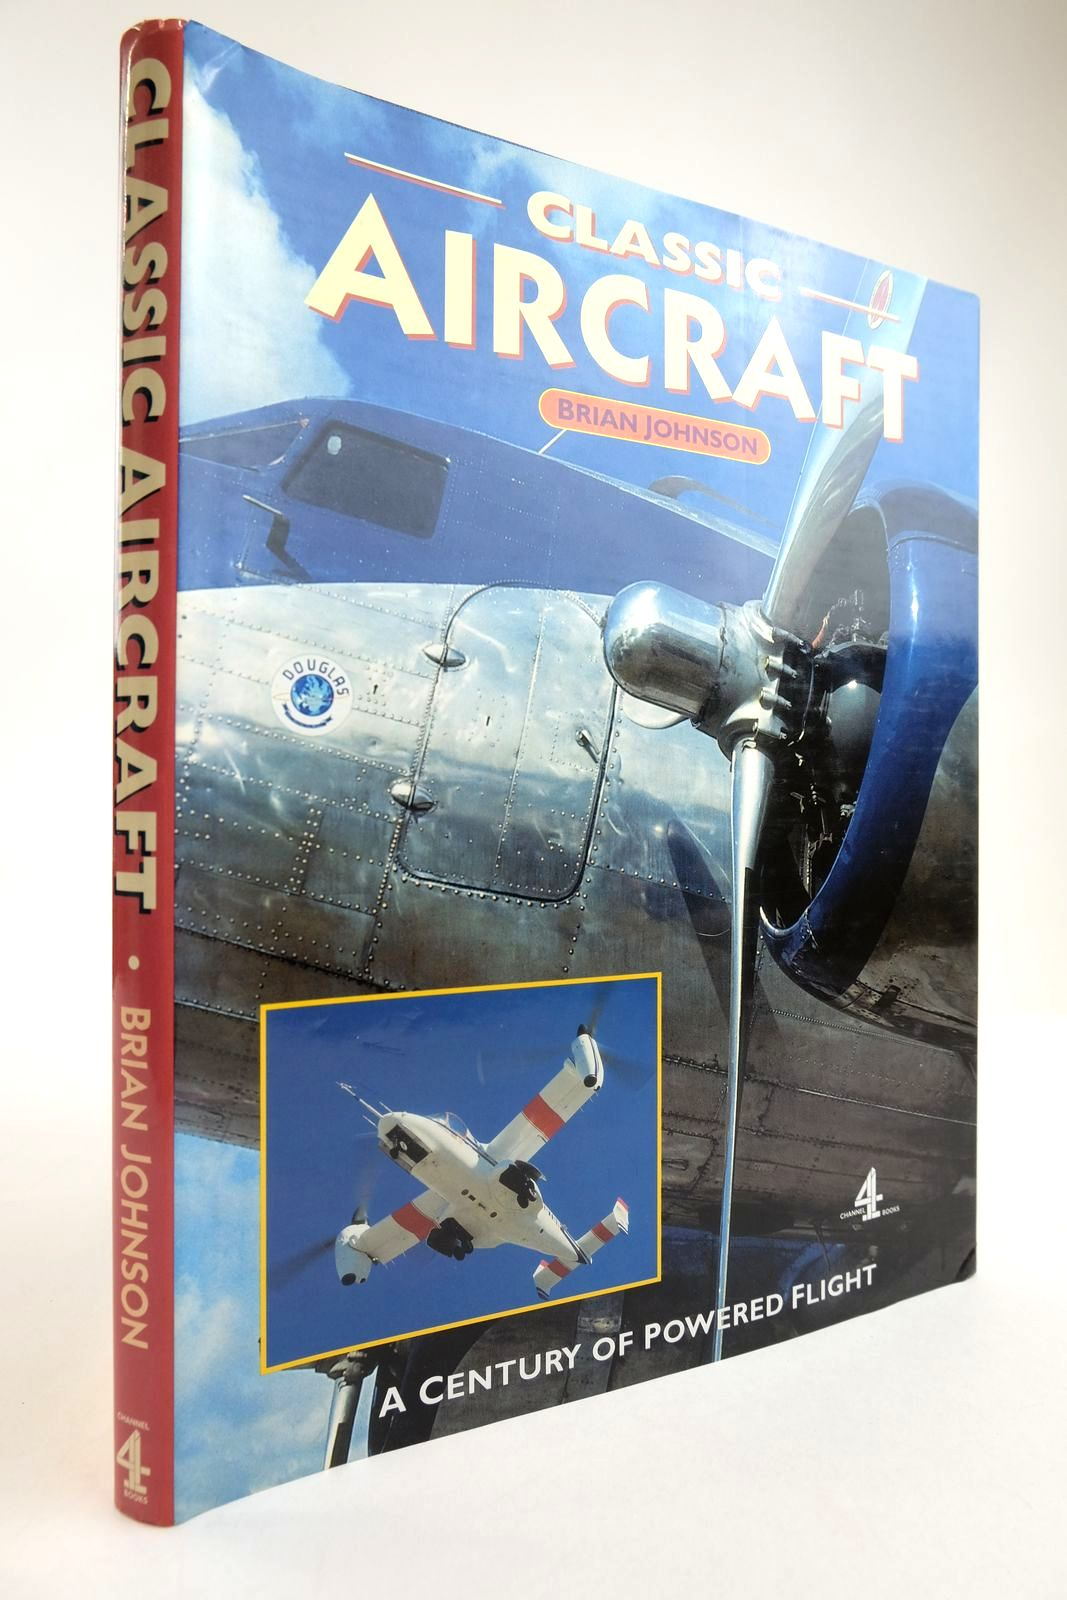 Photo of CLASSIC AIRCRAFT written by Johnson, Brian published by Channel Four Books (STOCK CODE: 2134236)  for sale by Stella & Rose's Books